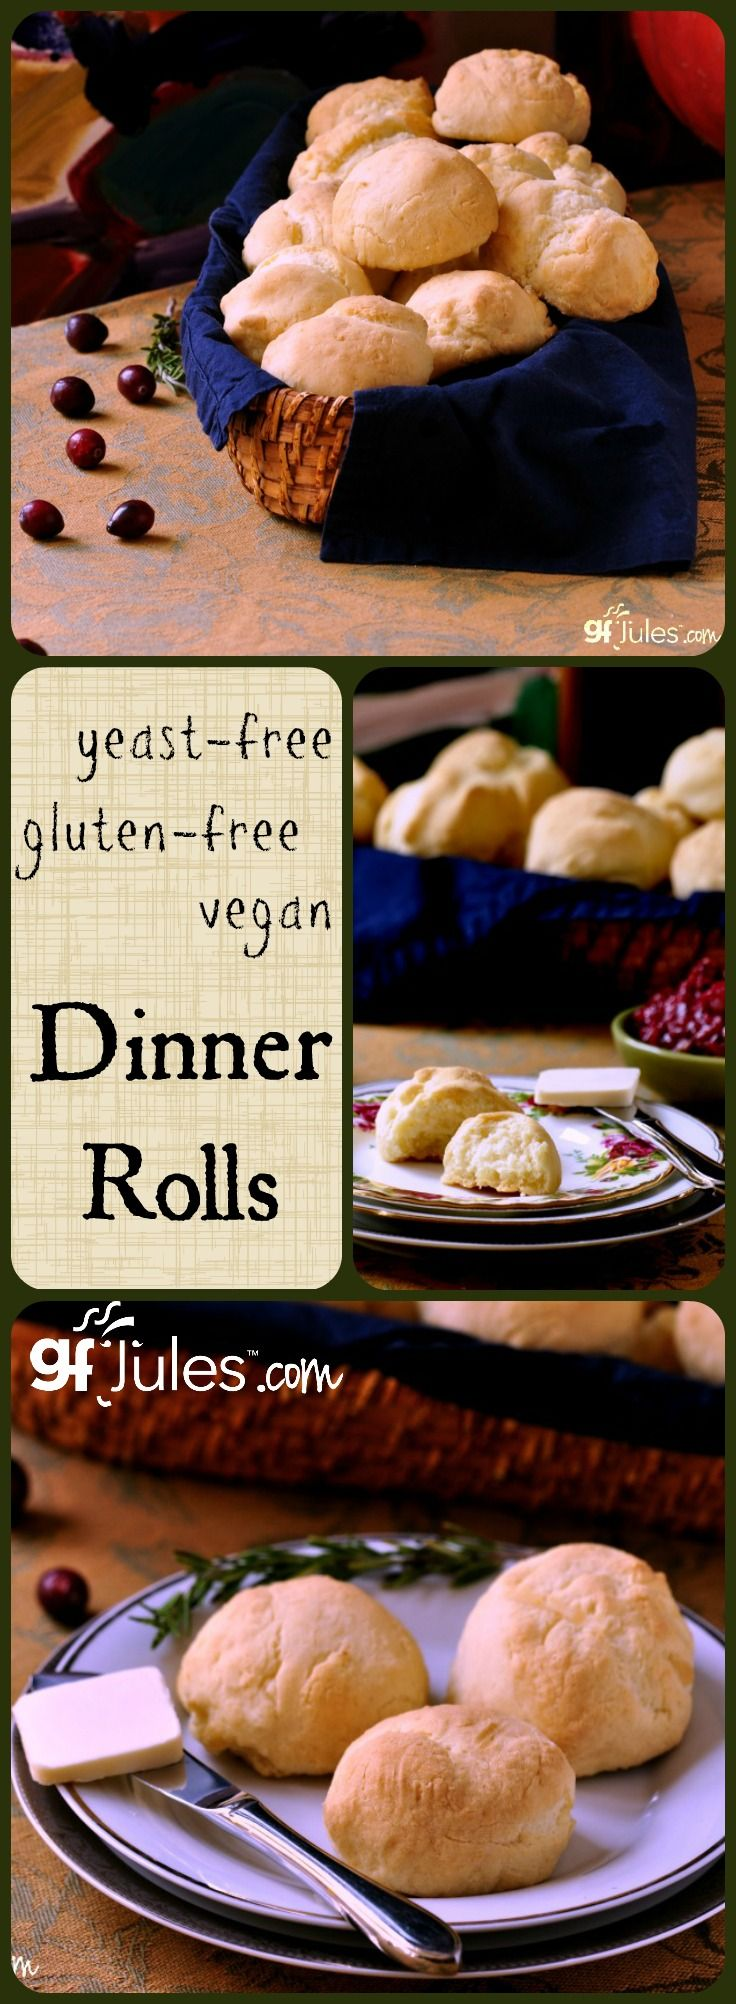 Amazingly light dinner rolls for Thanksgiving or any other meal where you need yummy bread! Gluten-free & Yeast-free & Vegan! #glutenfree #yeastfree #vegan dinner rolls  - gfJules